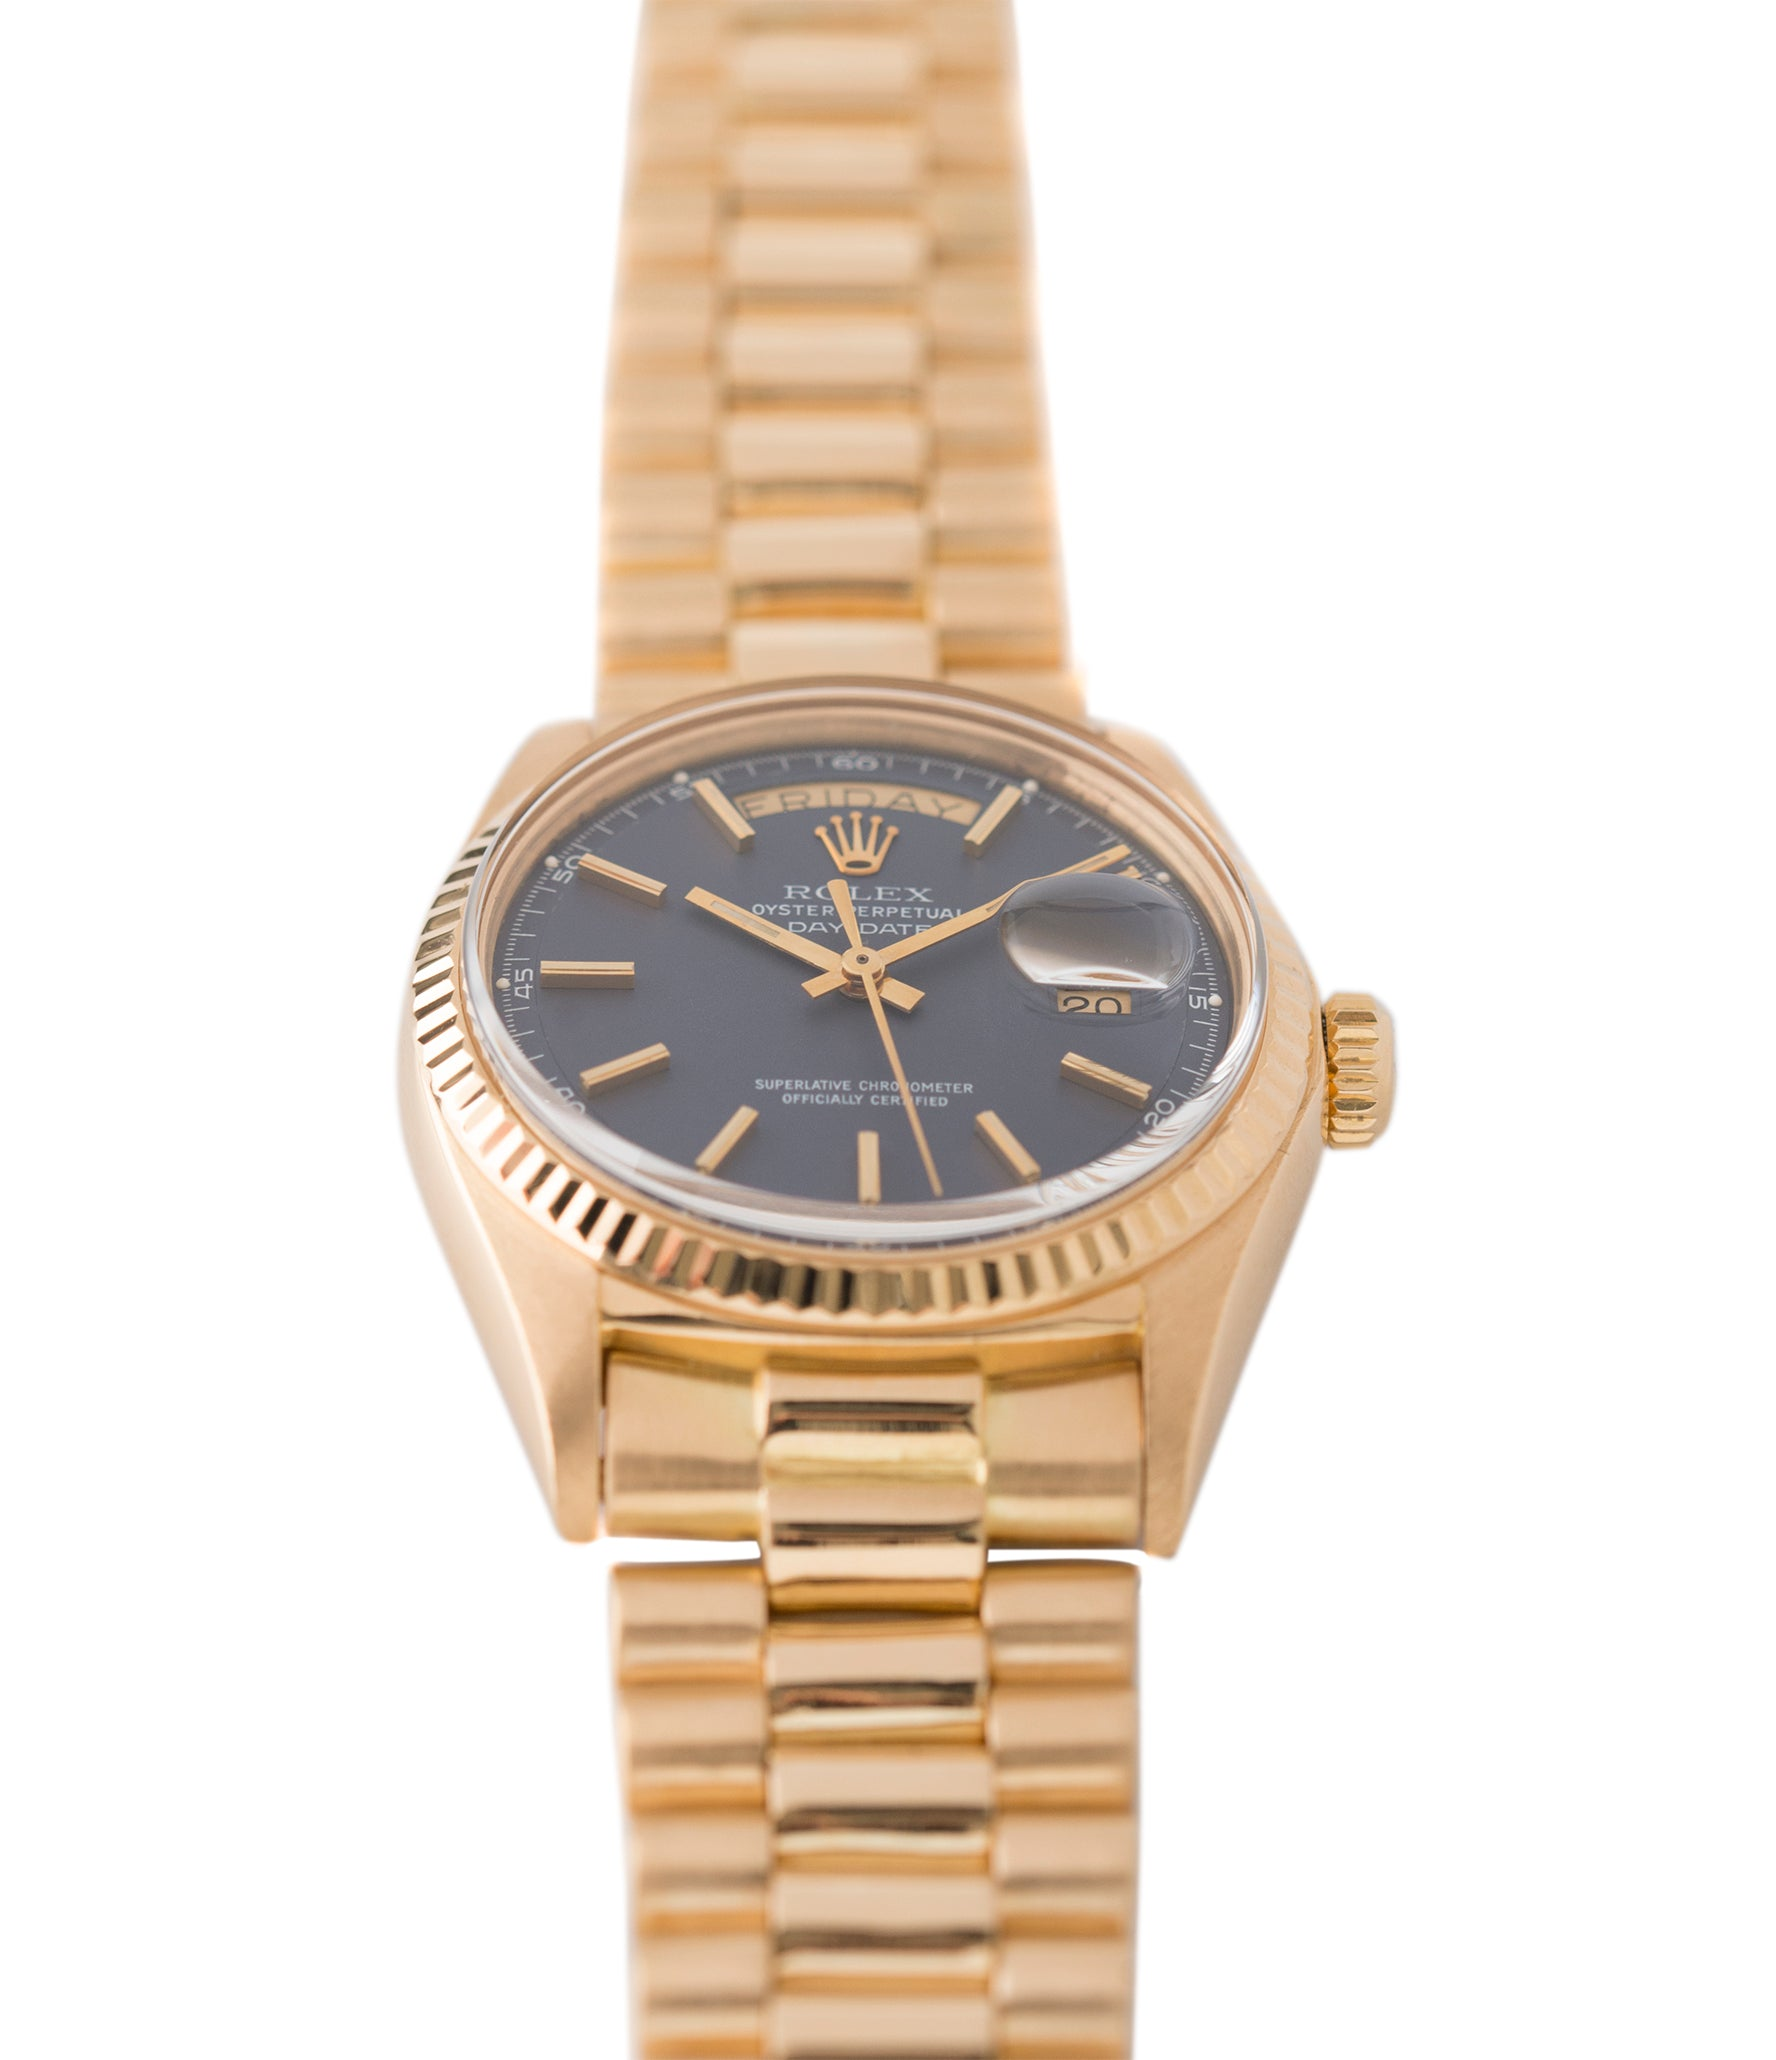 selling blue dial Day-Date vintage Rolex 1803 Oyster Perpetual Cal. 1556 gold watch for sale online at A Collected Man London UK specialist of rare watches